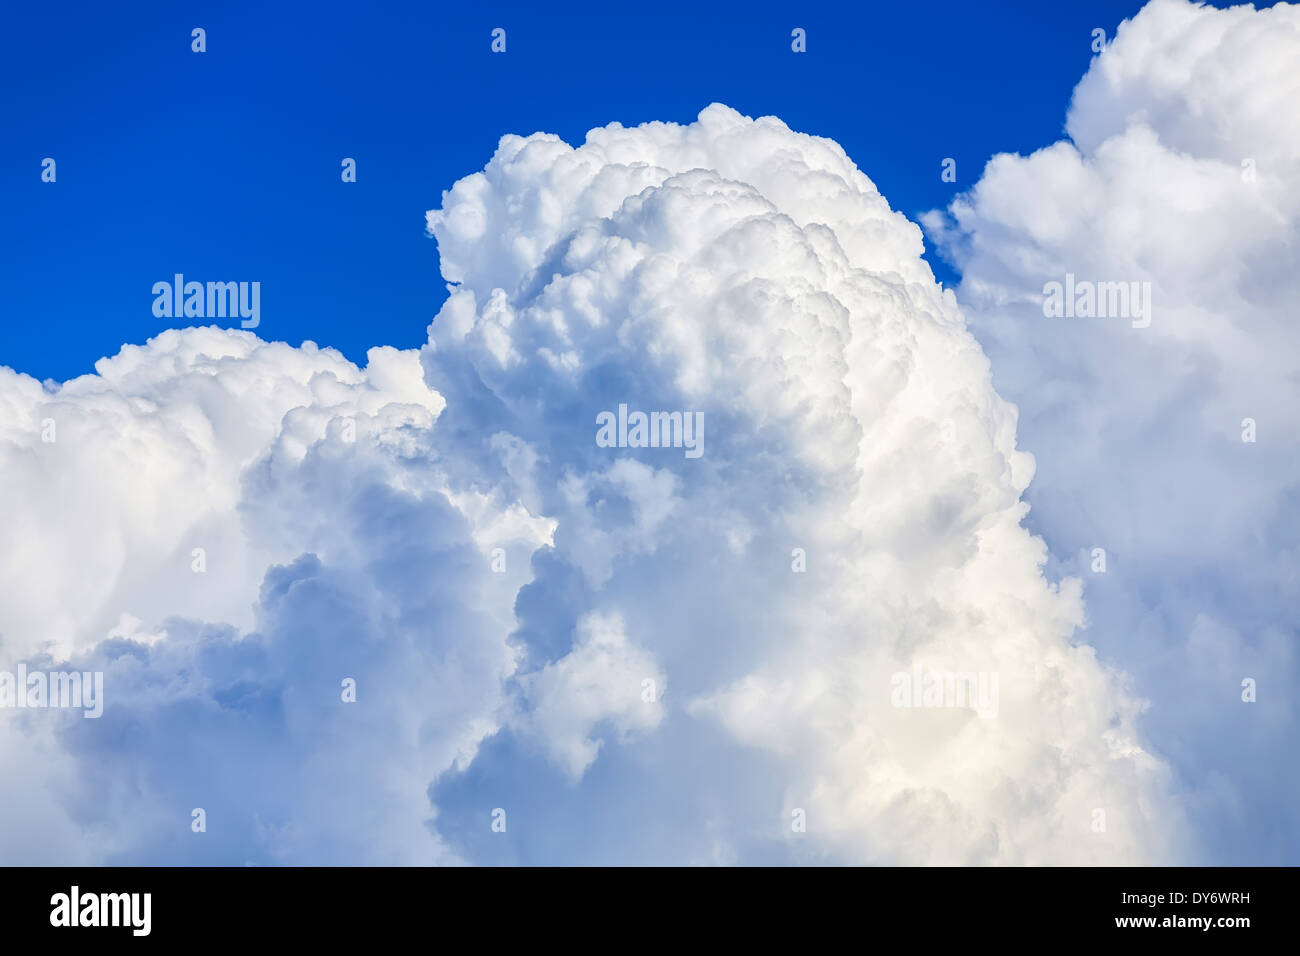 Cumulus cloud formation, close up - Stock Image